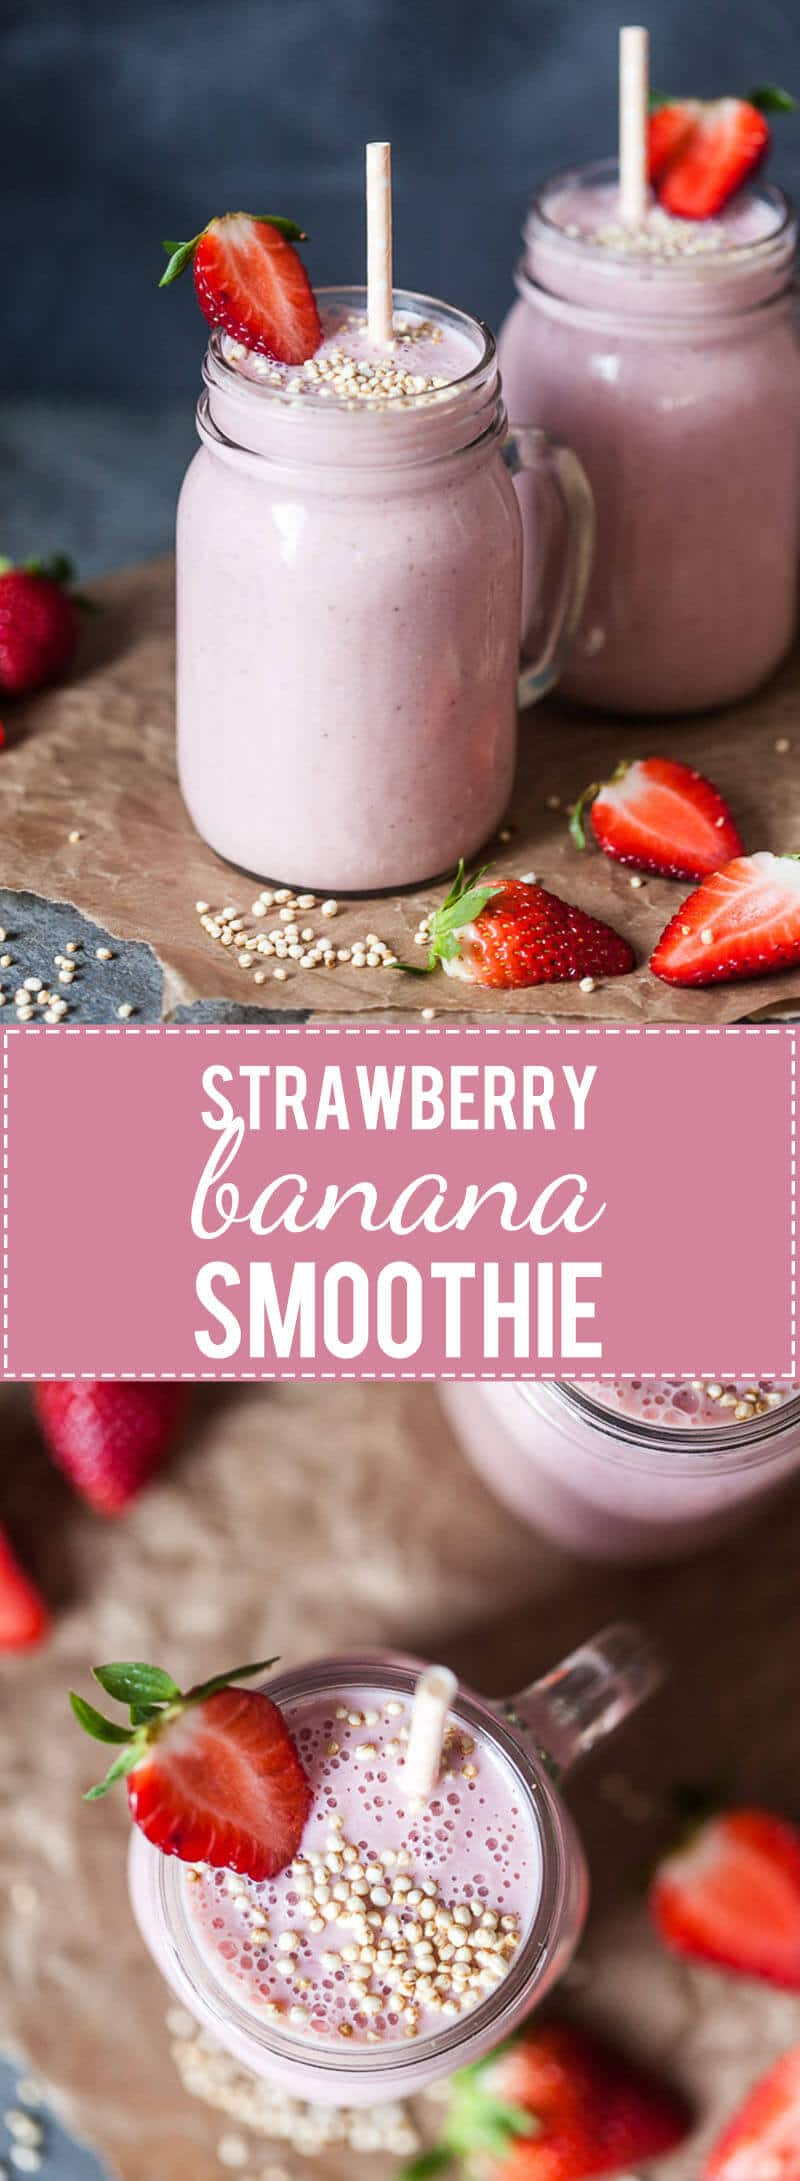 This Strawberry Banana Smoothie is a healthy breakfast option and ideal for an early spring morning.